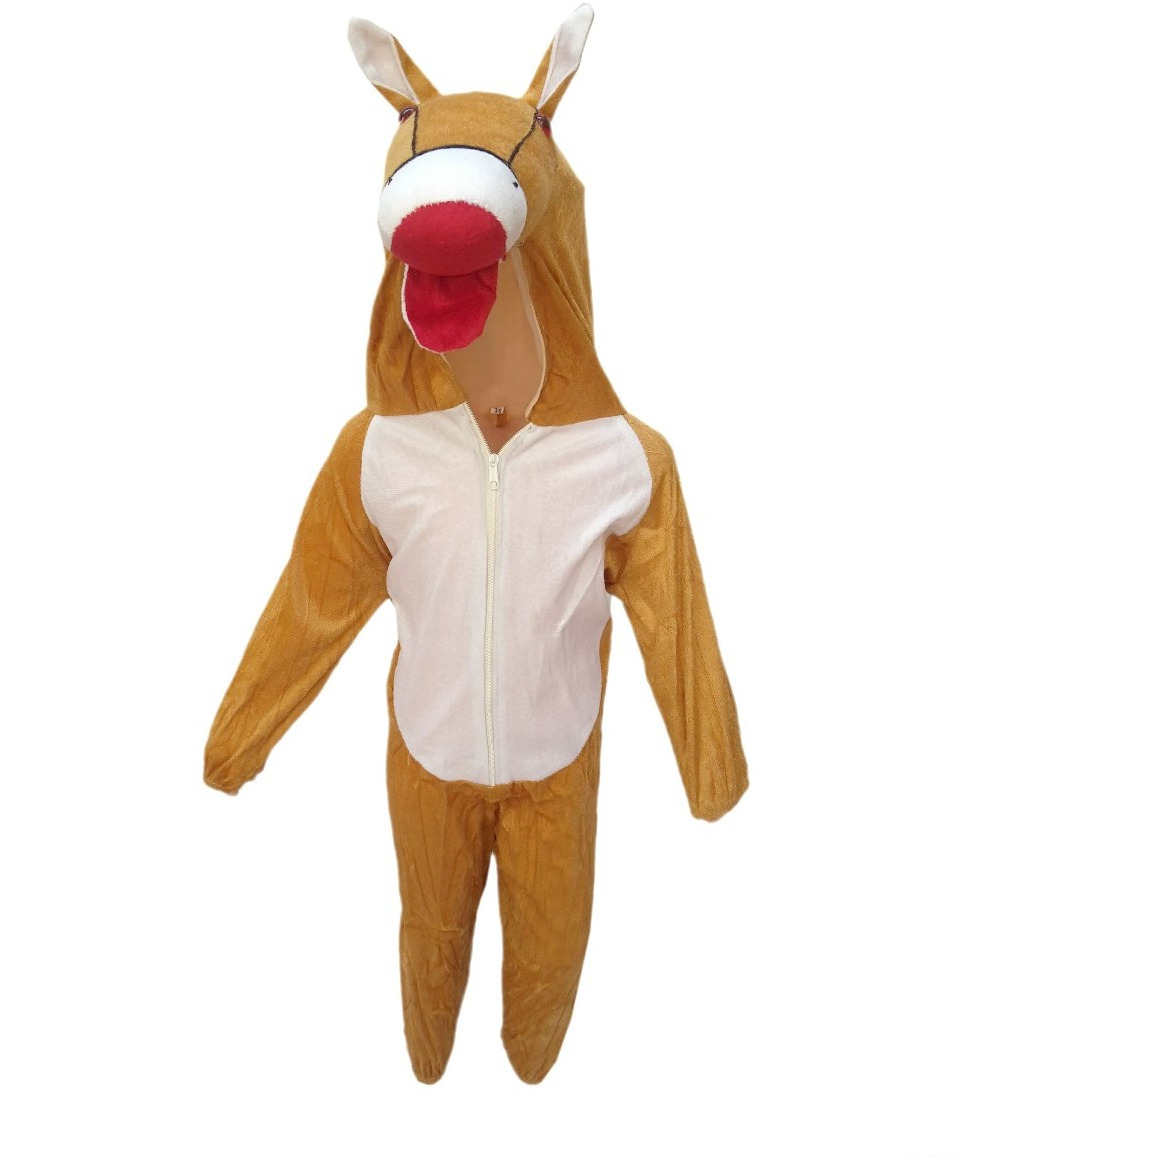 KFD Horse fancy dress for kids,Farm Animal Costume for School Annual function/Theme Party/Competition/Stage Shows Dress (Size:7 TO 8)